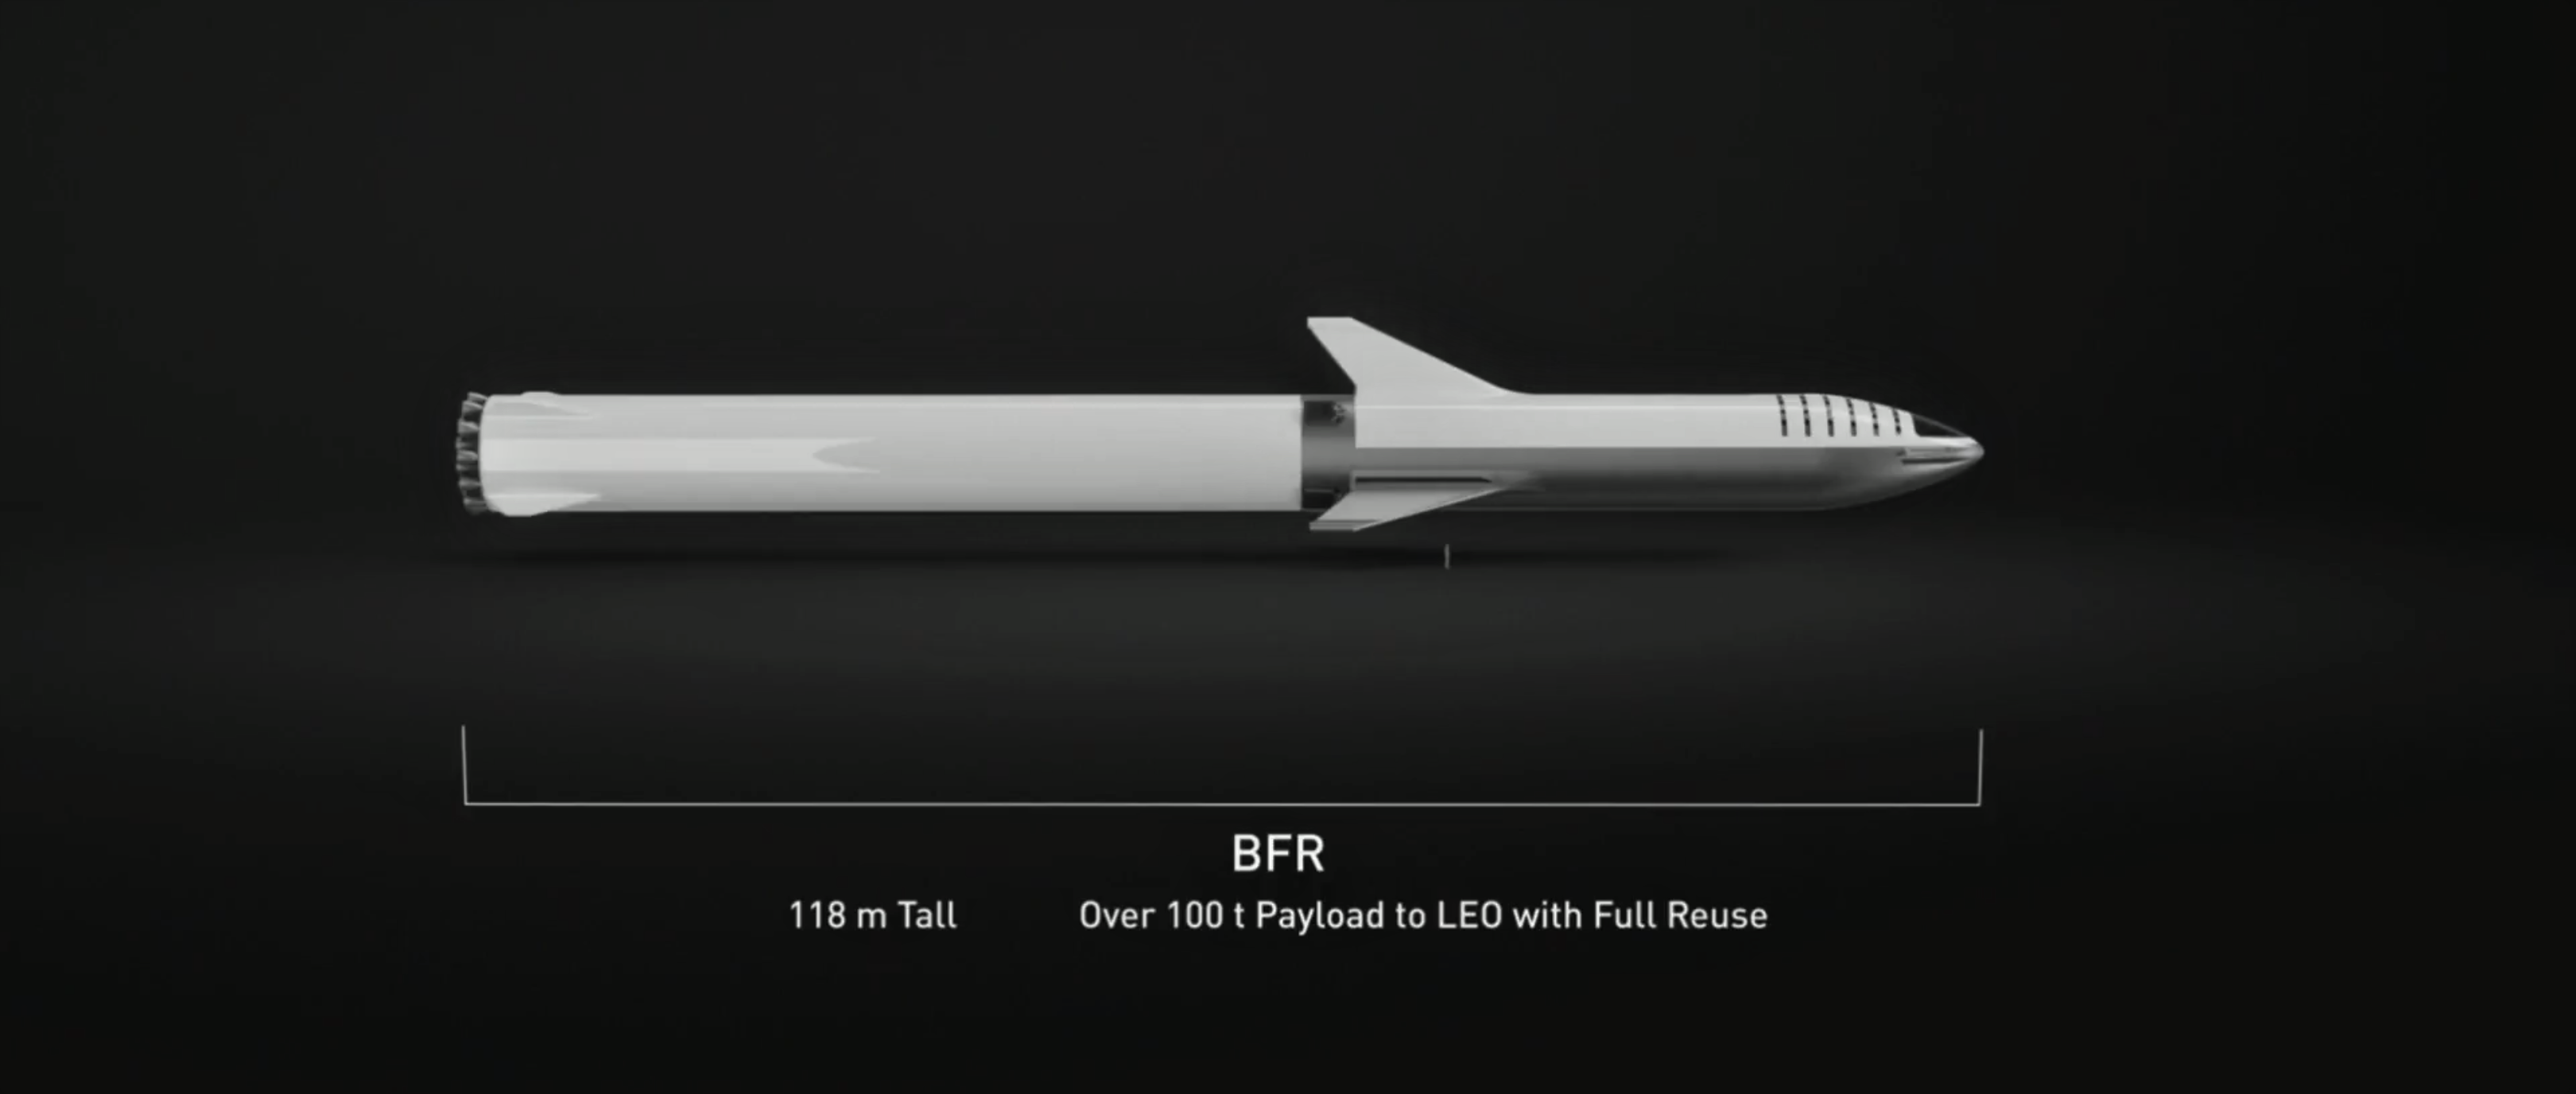 BFR 2018 event slides (SpaceX) 1